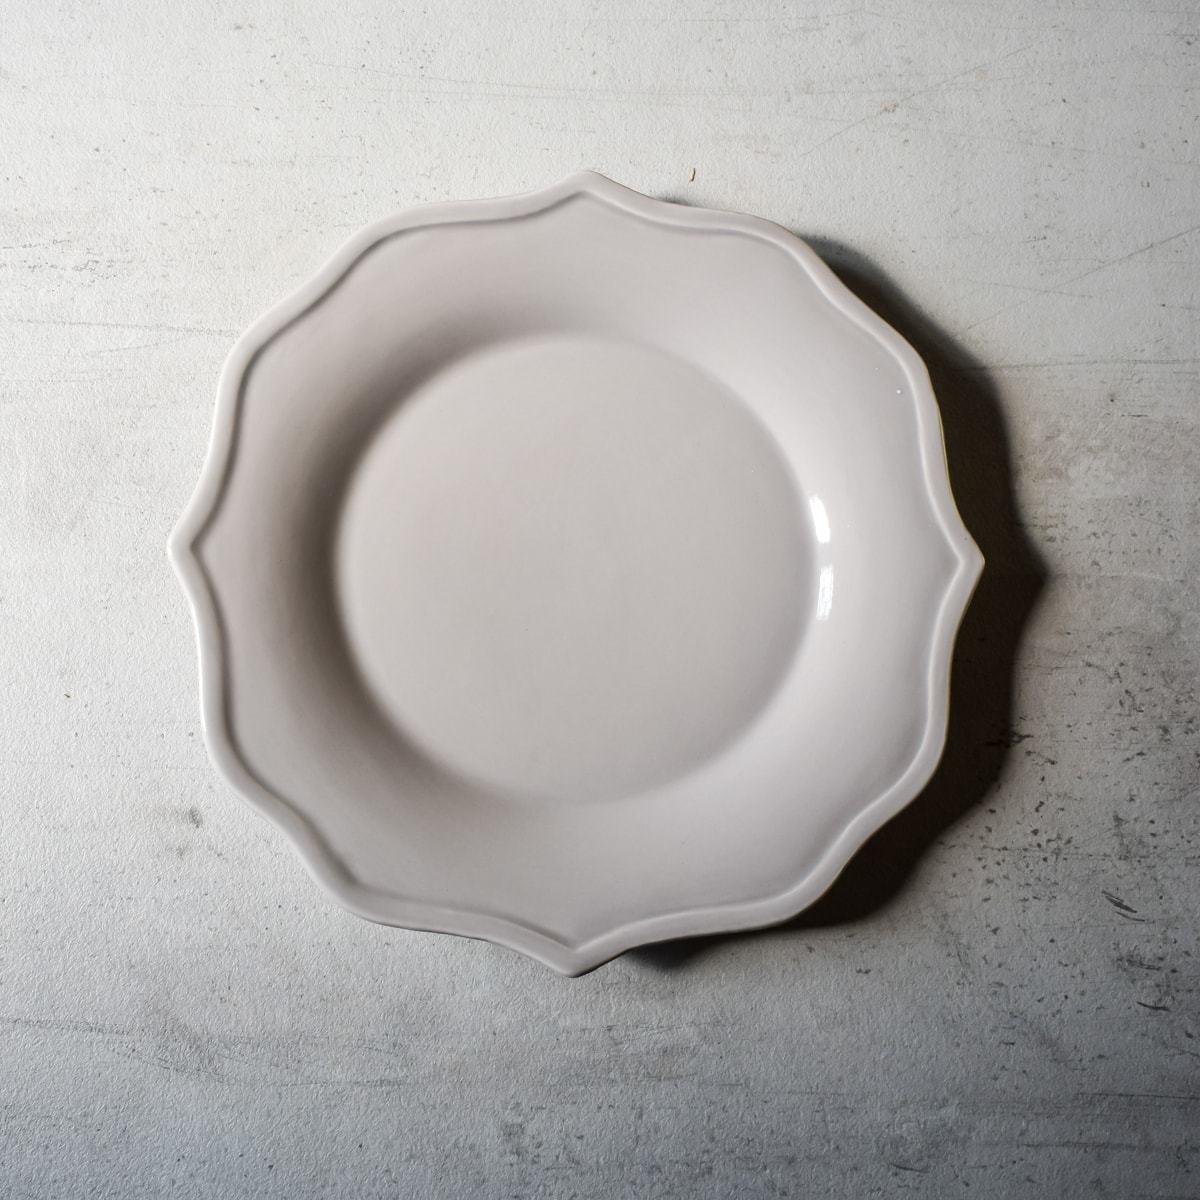 Pandora Powder Blue Ceramic Dinner Plate - Home Artisan & Buy Pandora Grey Ceramic Dinner Plate - Home Artisan